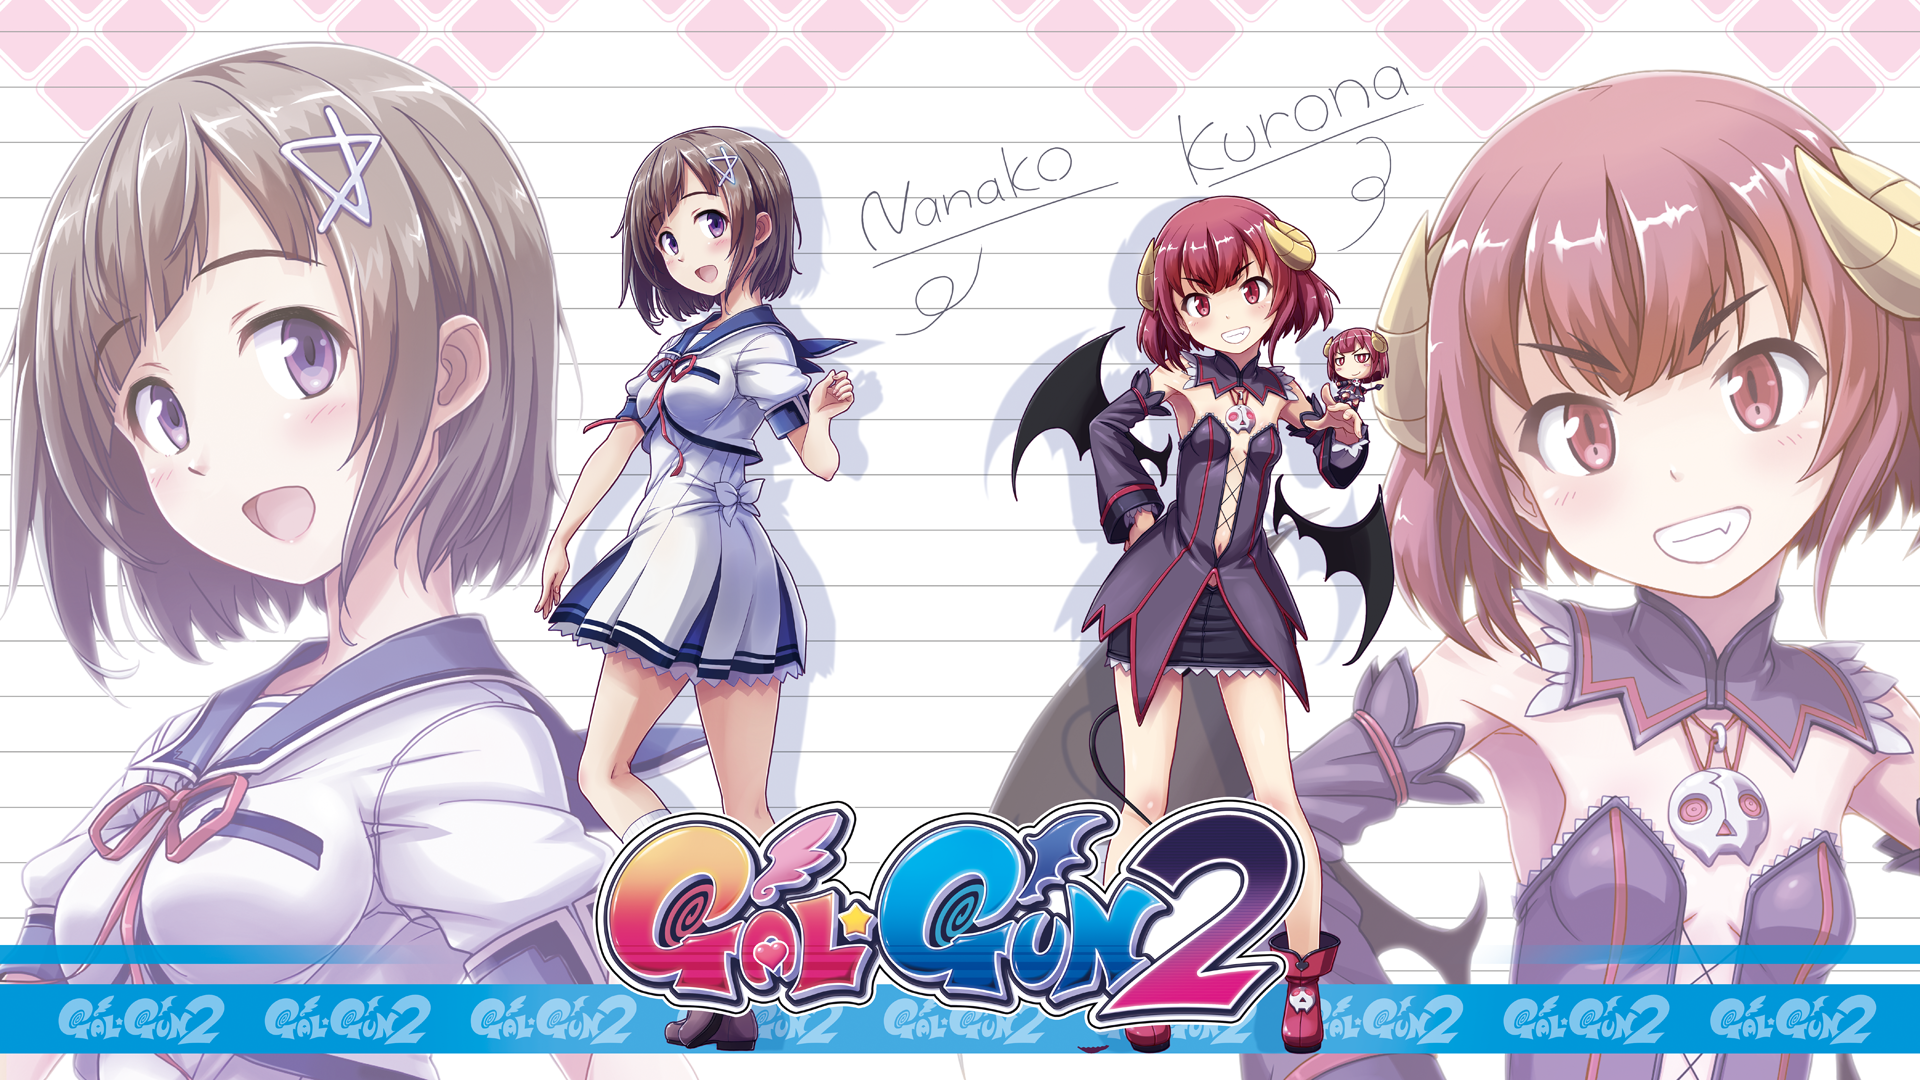 Gal*Gun 2 - Nanako and Kurona